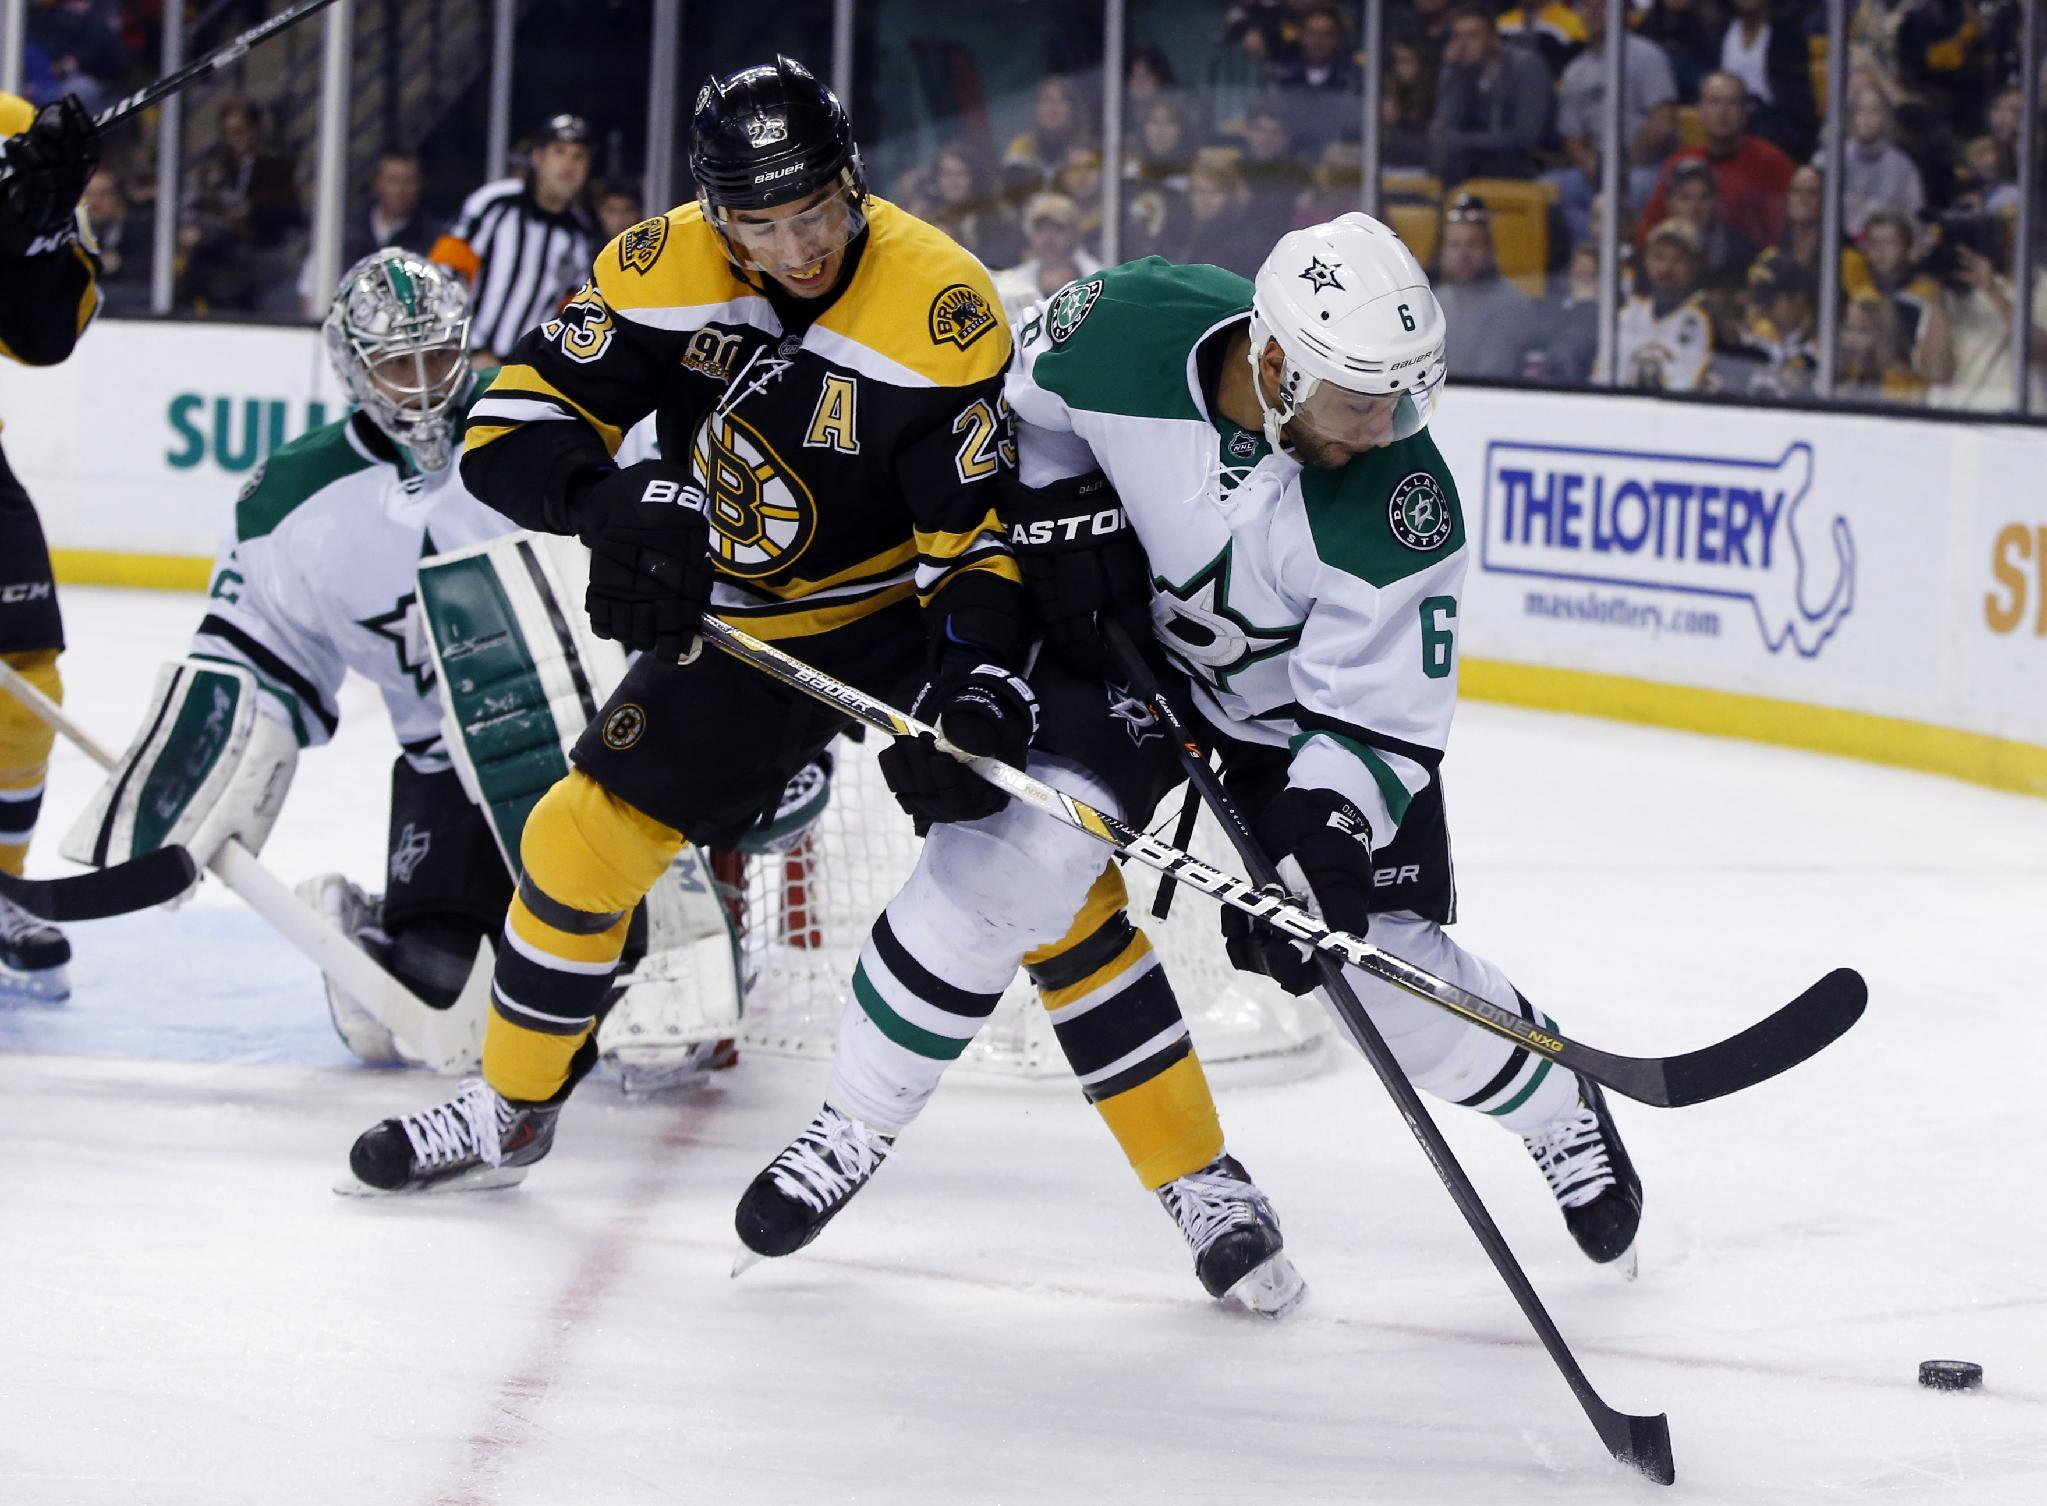 Boston Bruins center Chris Kelly (23) tries to gain control of the puck as Dallas Stars defenseman Trevor Daley (6) defends while Stars goalie Kari Lehtonen watches at left during the second period of an NHL hockey game in Boston, Tuesday, Nov. 5, 2013